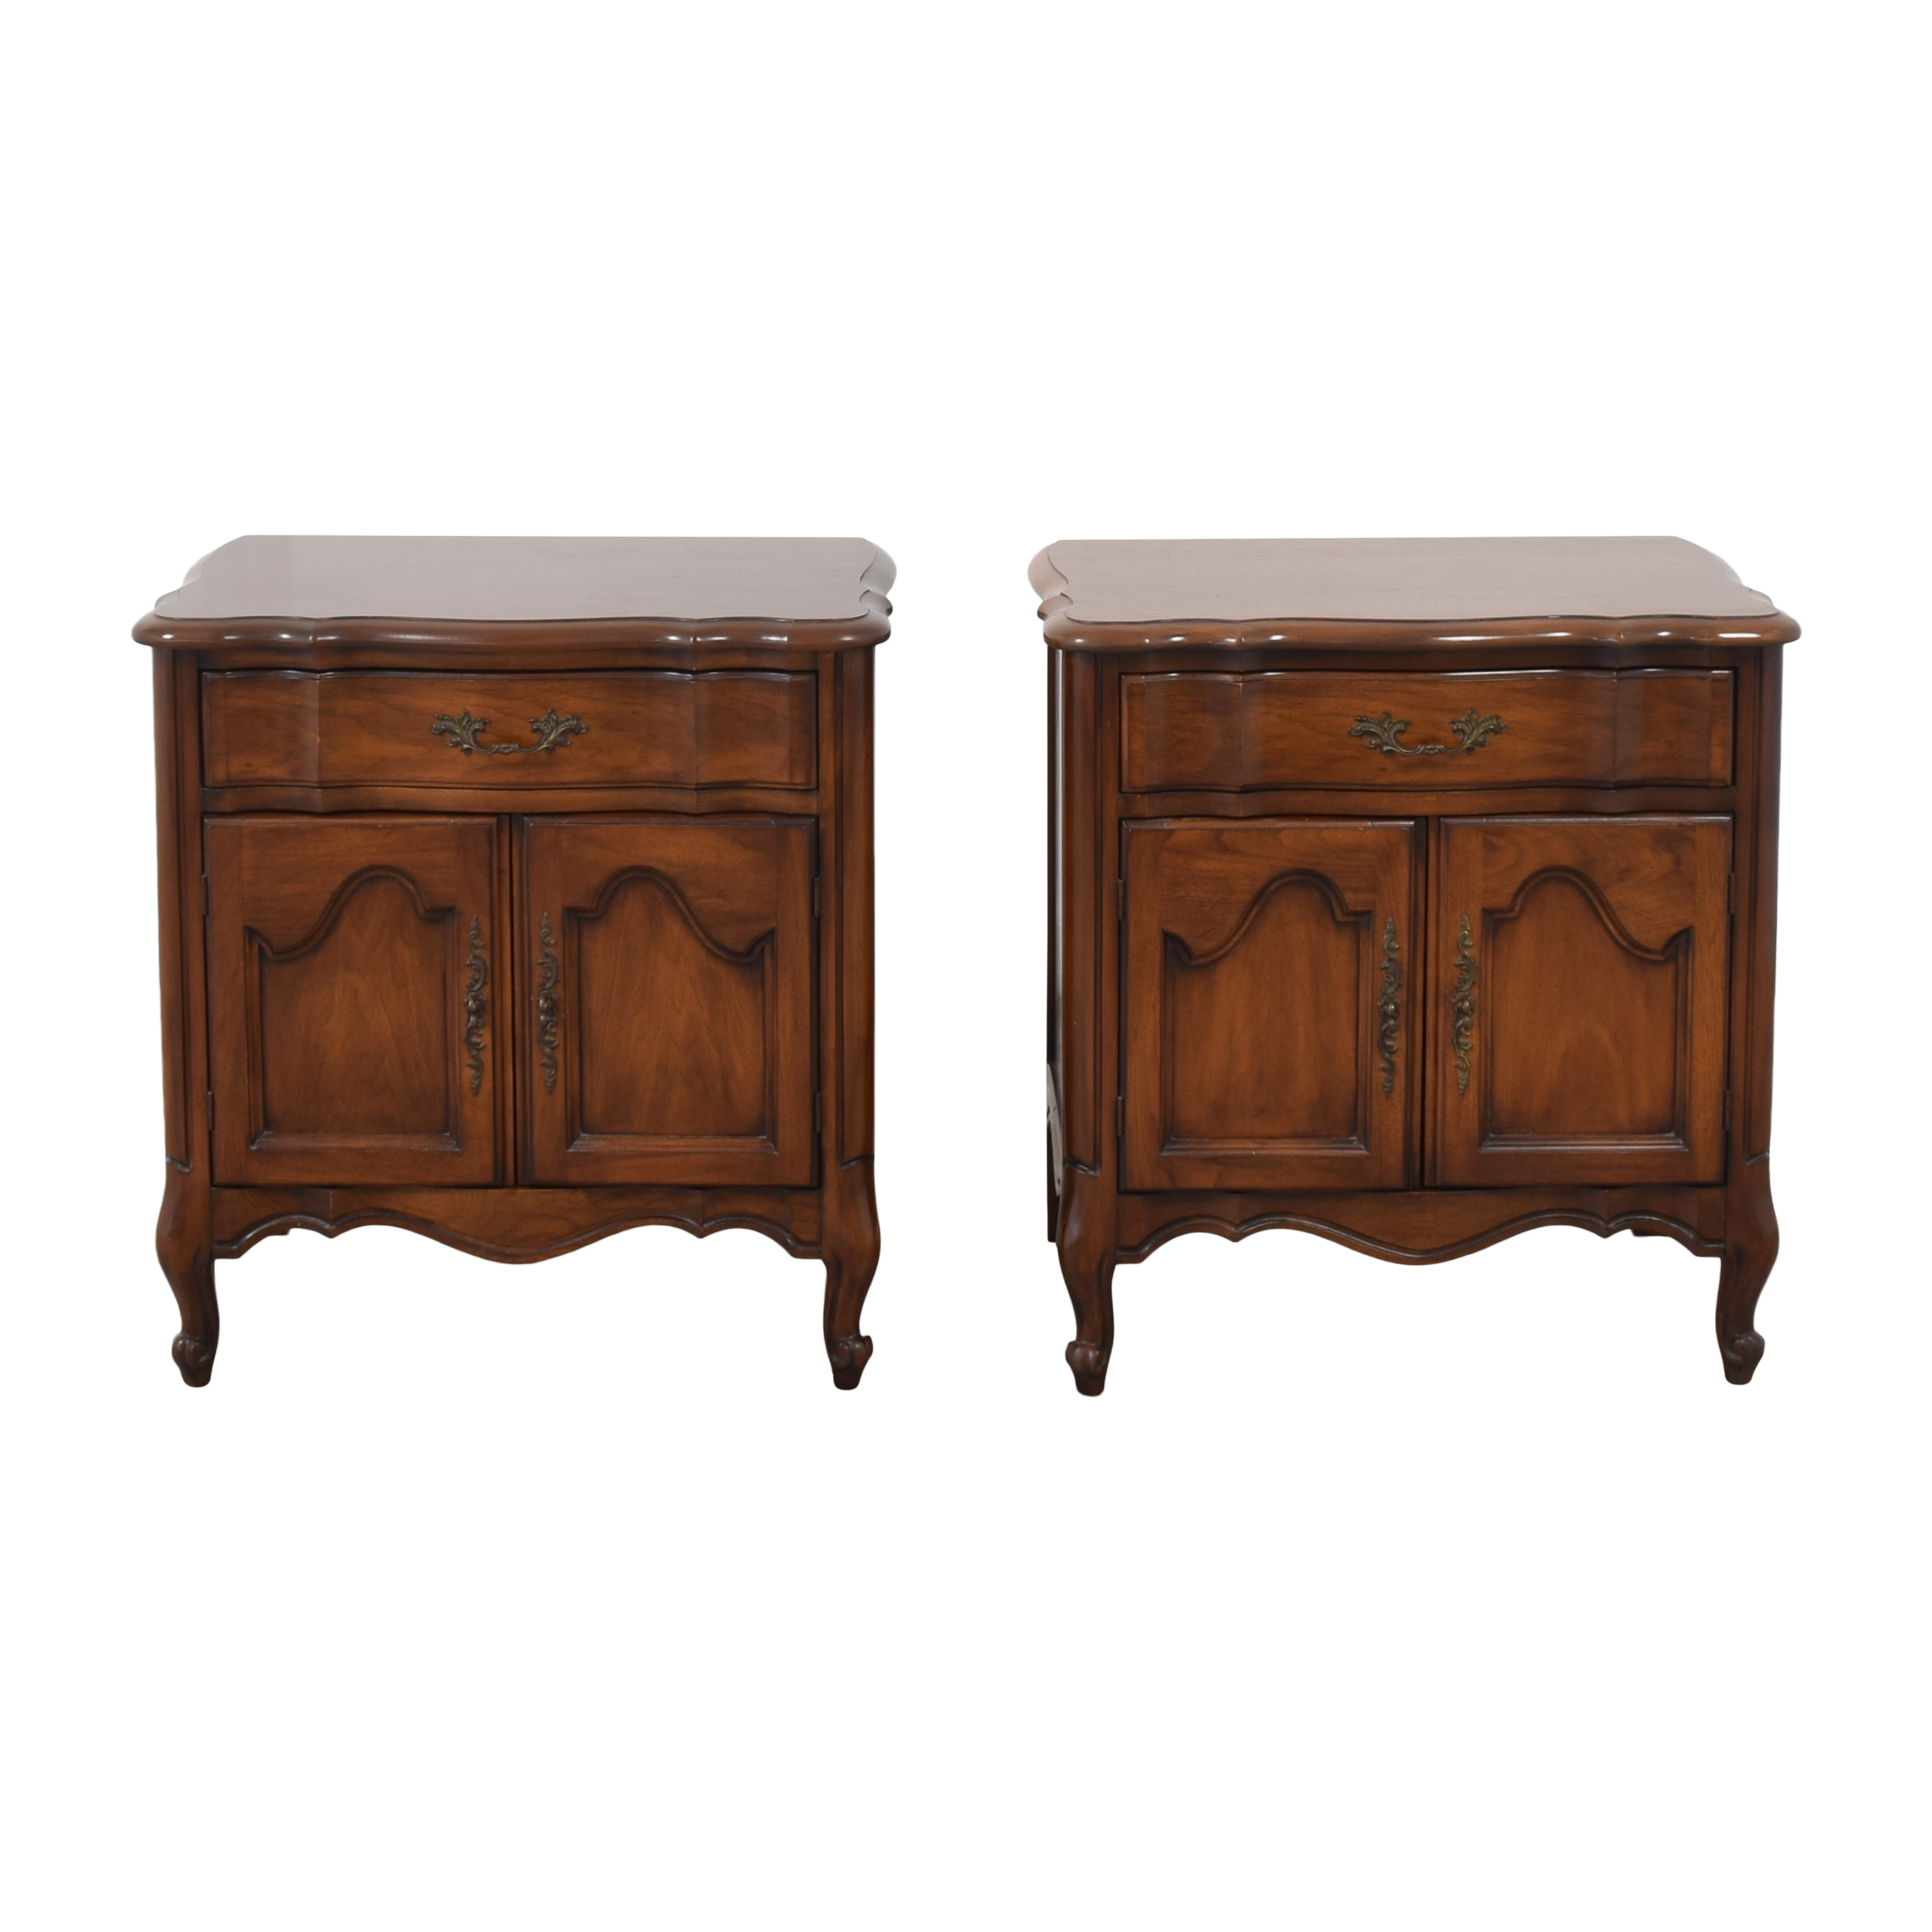 White Fine Furniture White Fine Furniture French Provincial Nightstands Tables